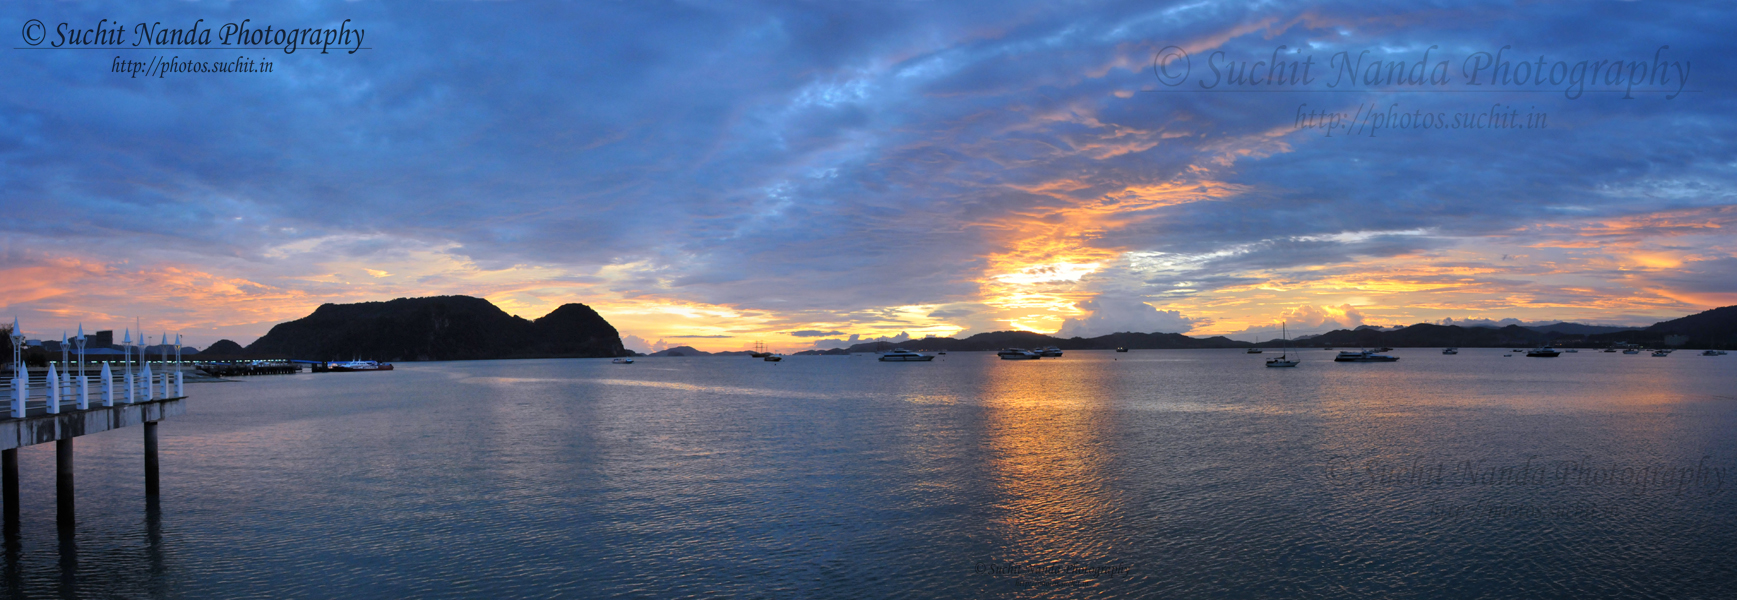 """Panoramic image showing the lovely sunset at Eagle Square / Dataran Lang is Langkawi's most prominent landmark for visitors arriving by sea and also a place visited by others. Situated near the Kuah jetty, the main attraction of the square is the magnificent statue of the reddish brown eagle majestically poised for flight. According to local folklore, the name Langkawi itself is derived from- the eagle or """"helang"""". In old Malay, """"kawi"""" denotes reddish brown - hence, Langkawi means reddish brown eagle!"""